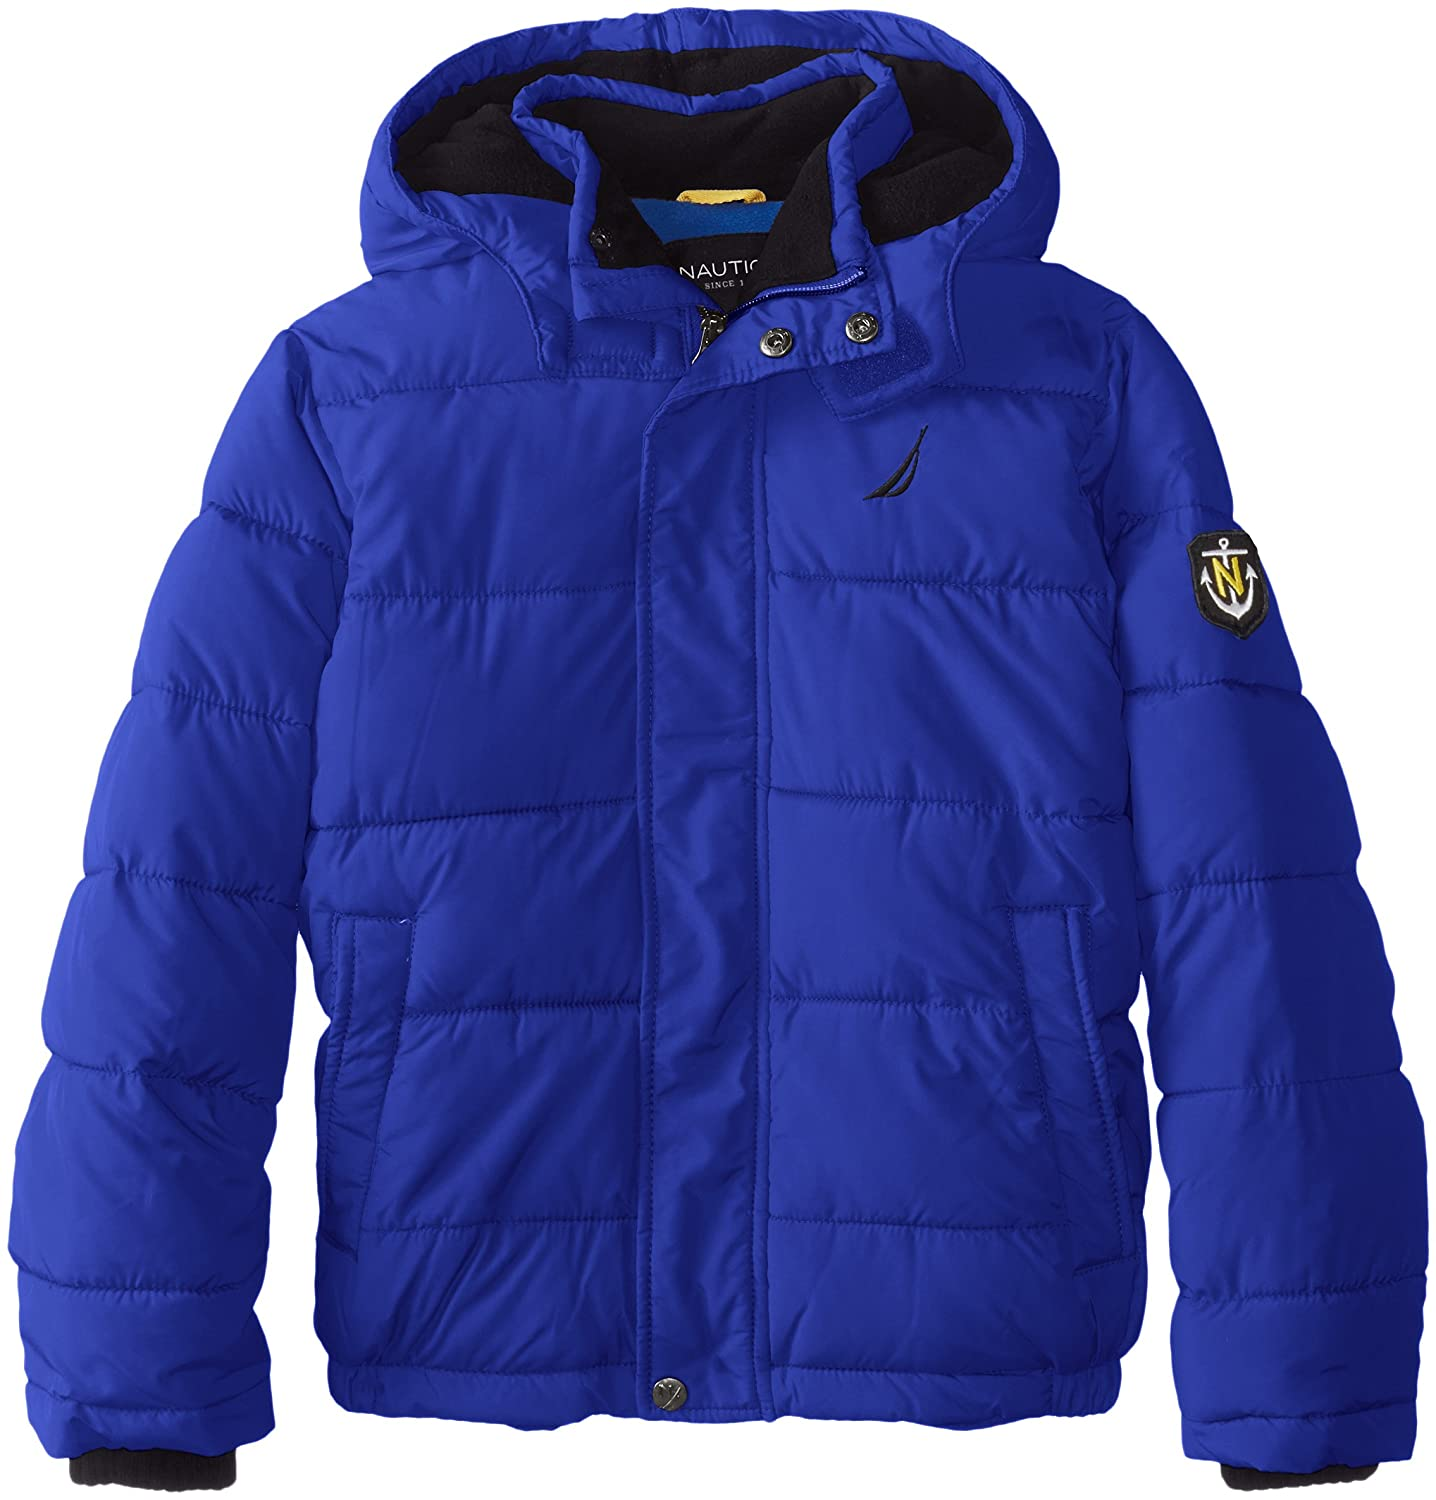 ad9813226 Amazon.com: Nautica Boys' Big Water Resistant Signature Bubble Jacket with  Storm Cuffs: Clothing